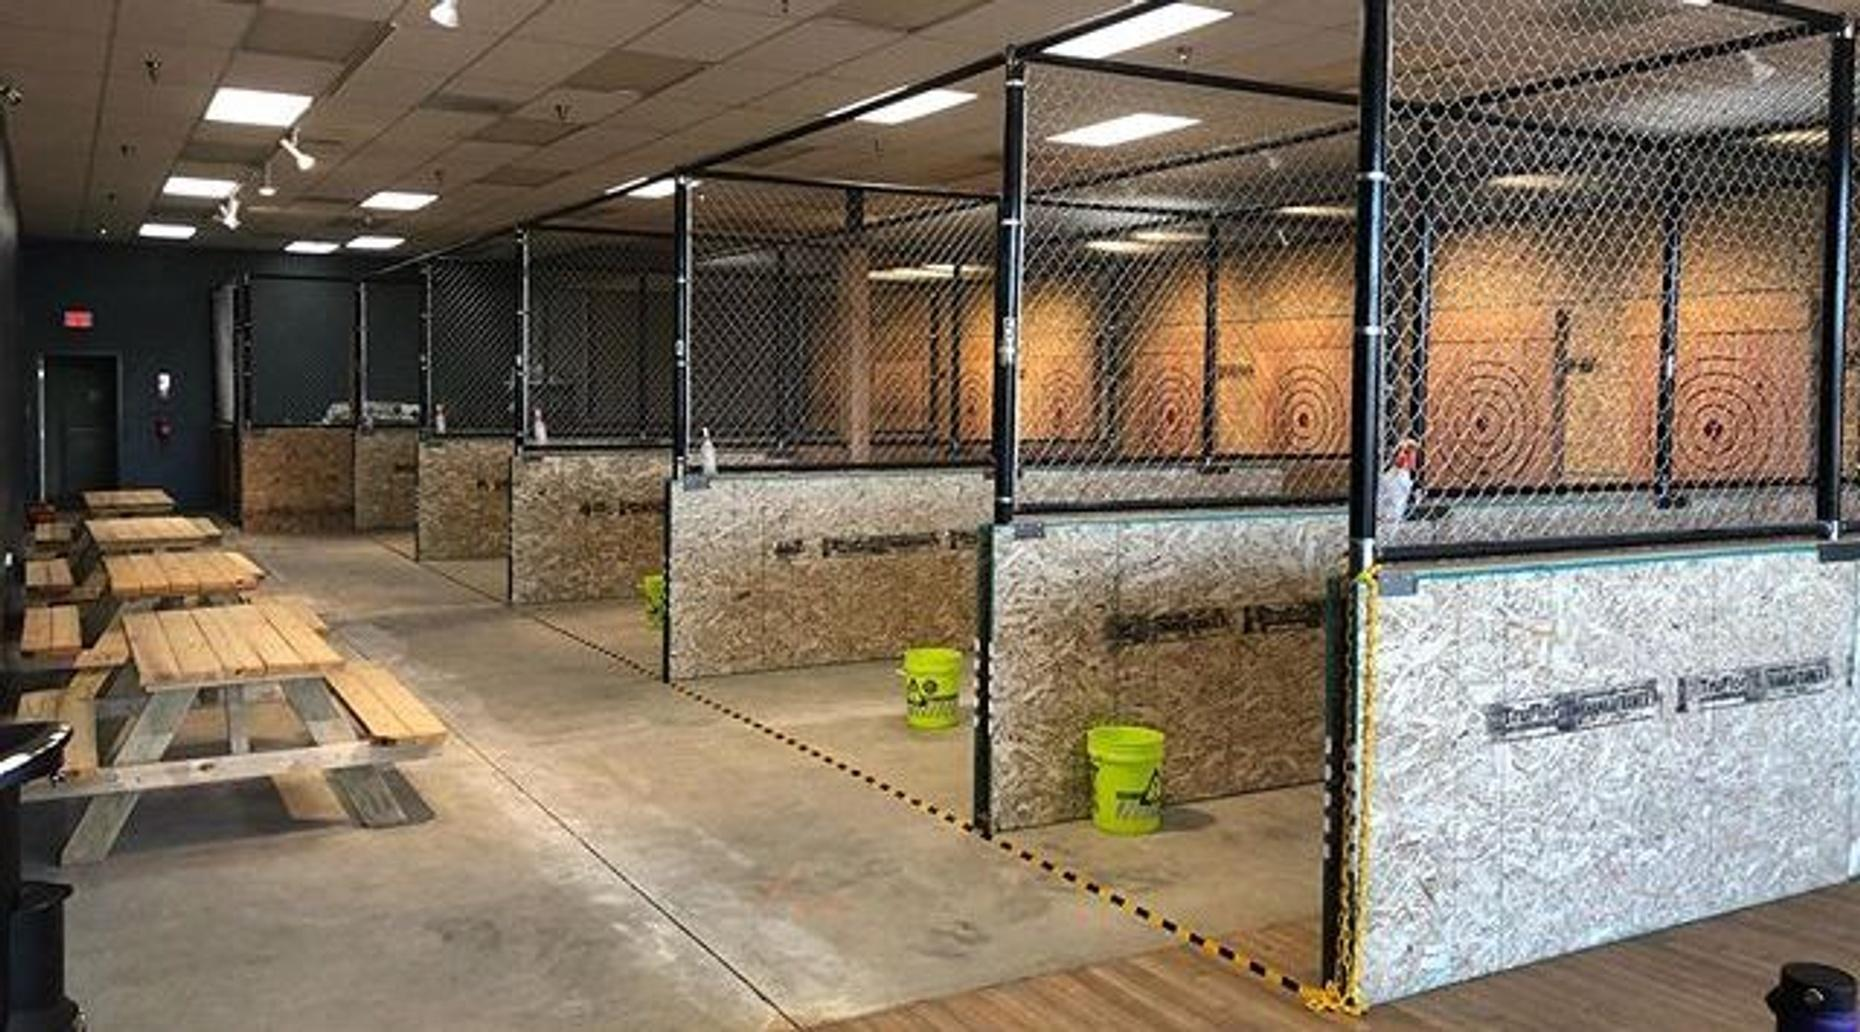 Axe Throwing - Lane 4 (16 person Max)